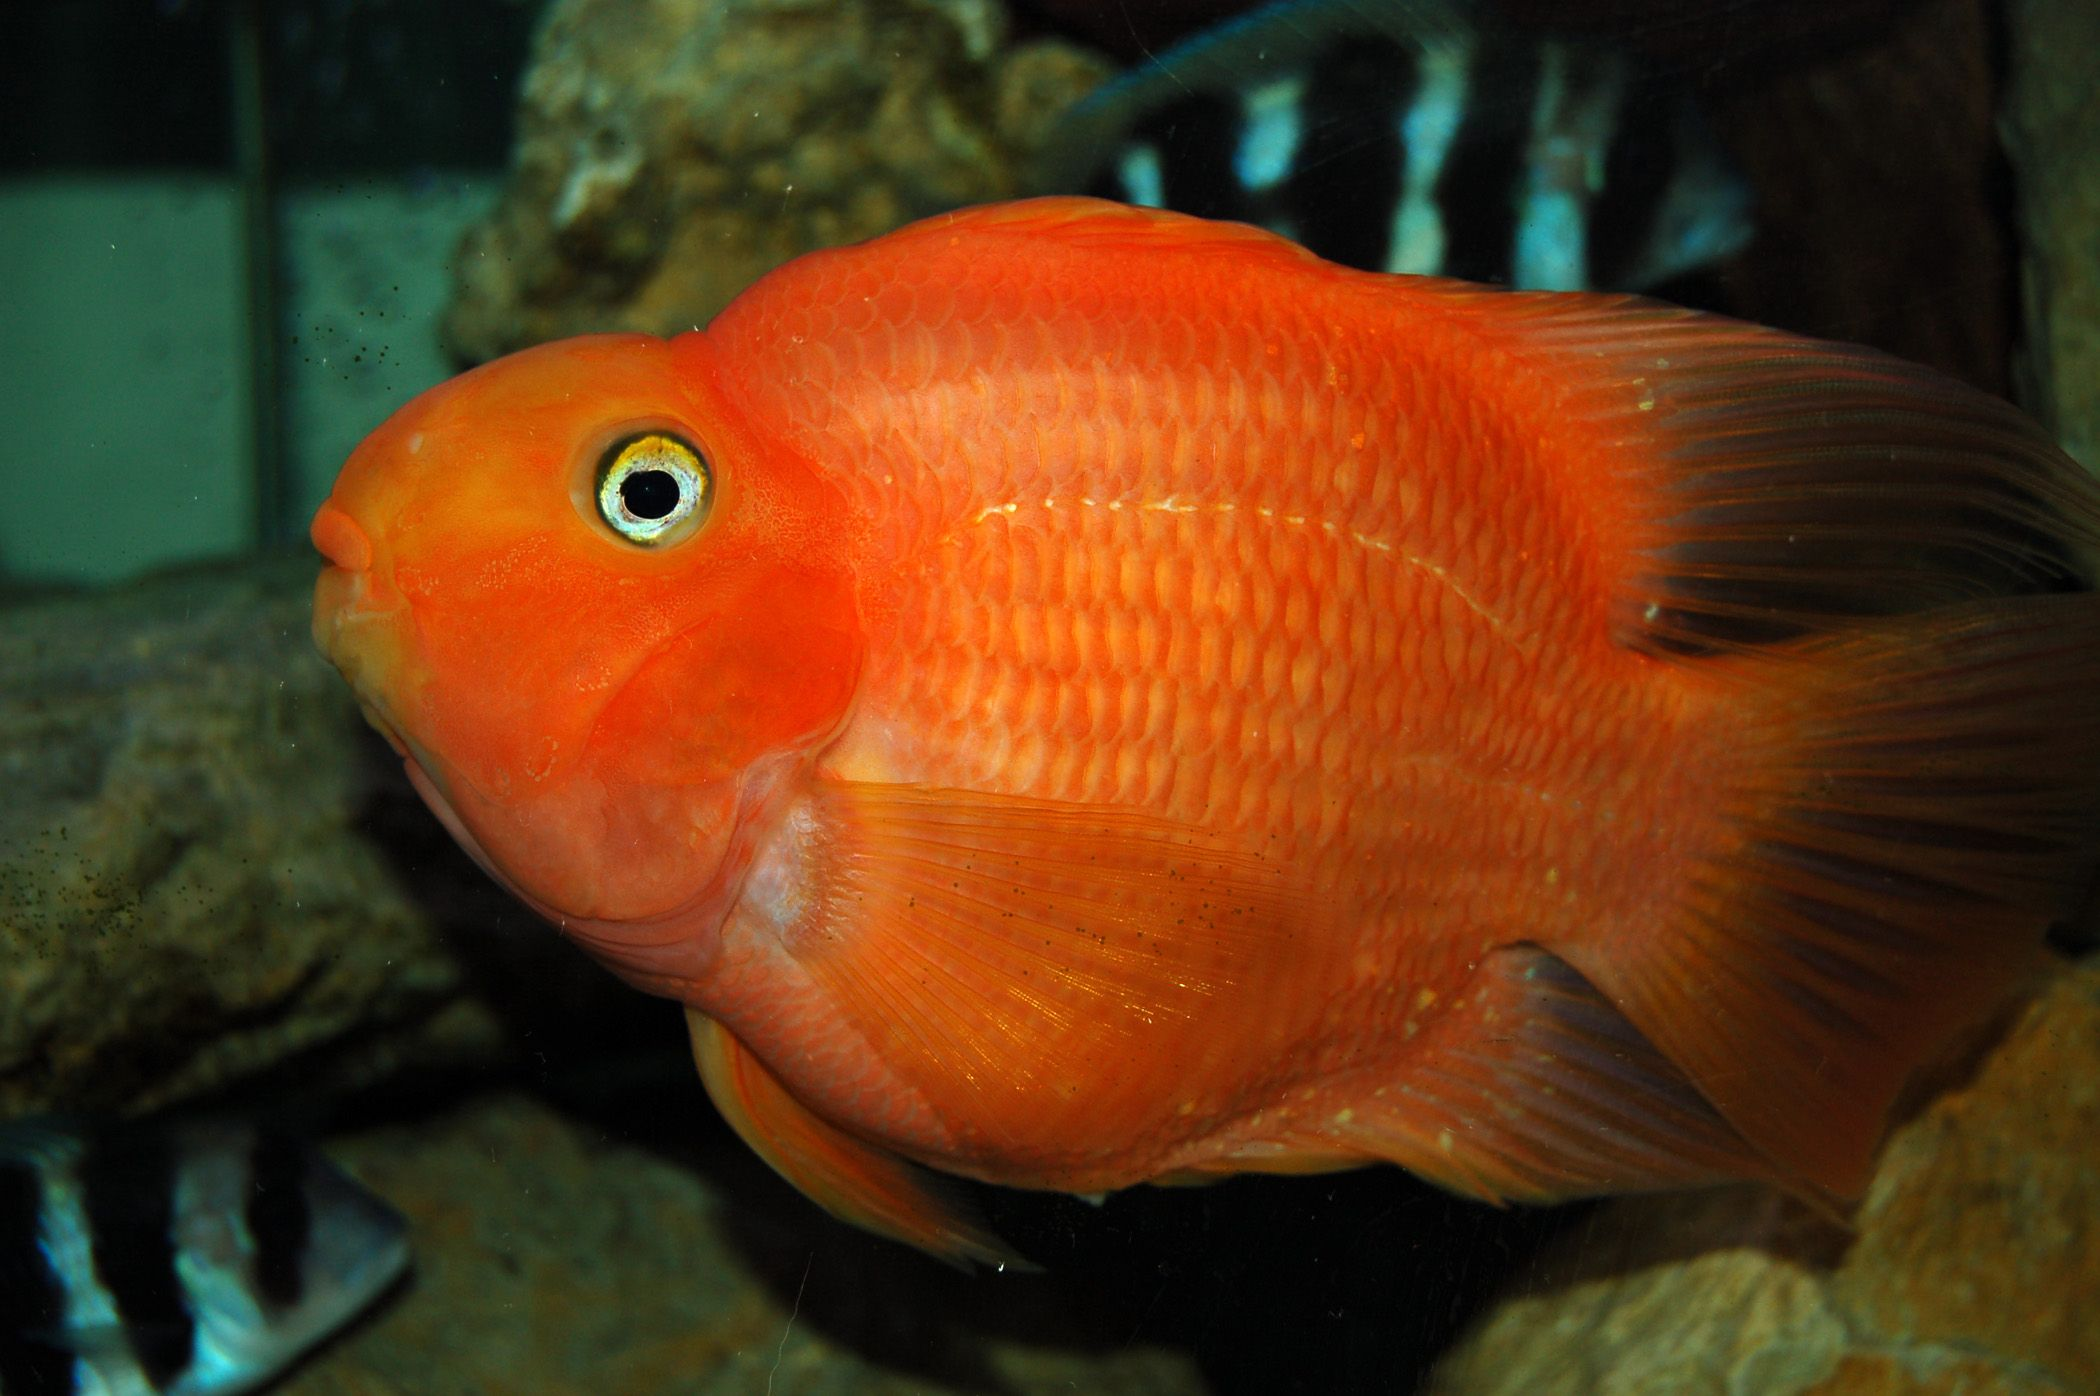 Giant Parrot Fish Parrot Fish Fish Aquarium Fish